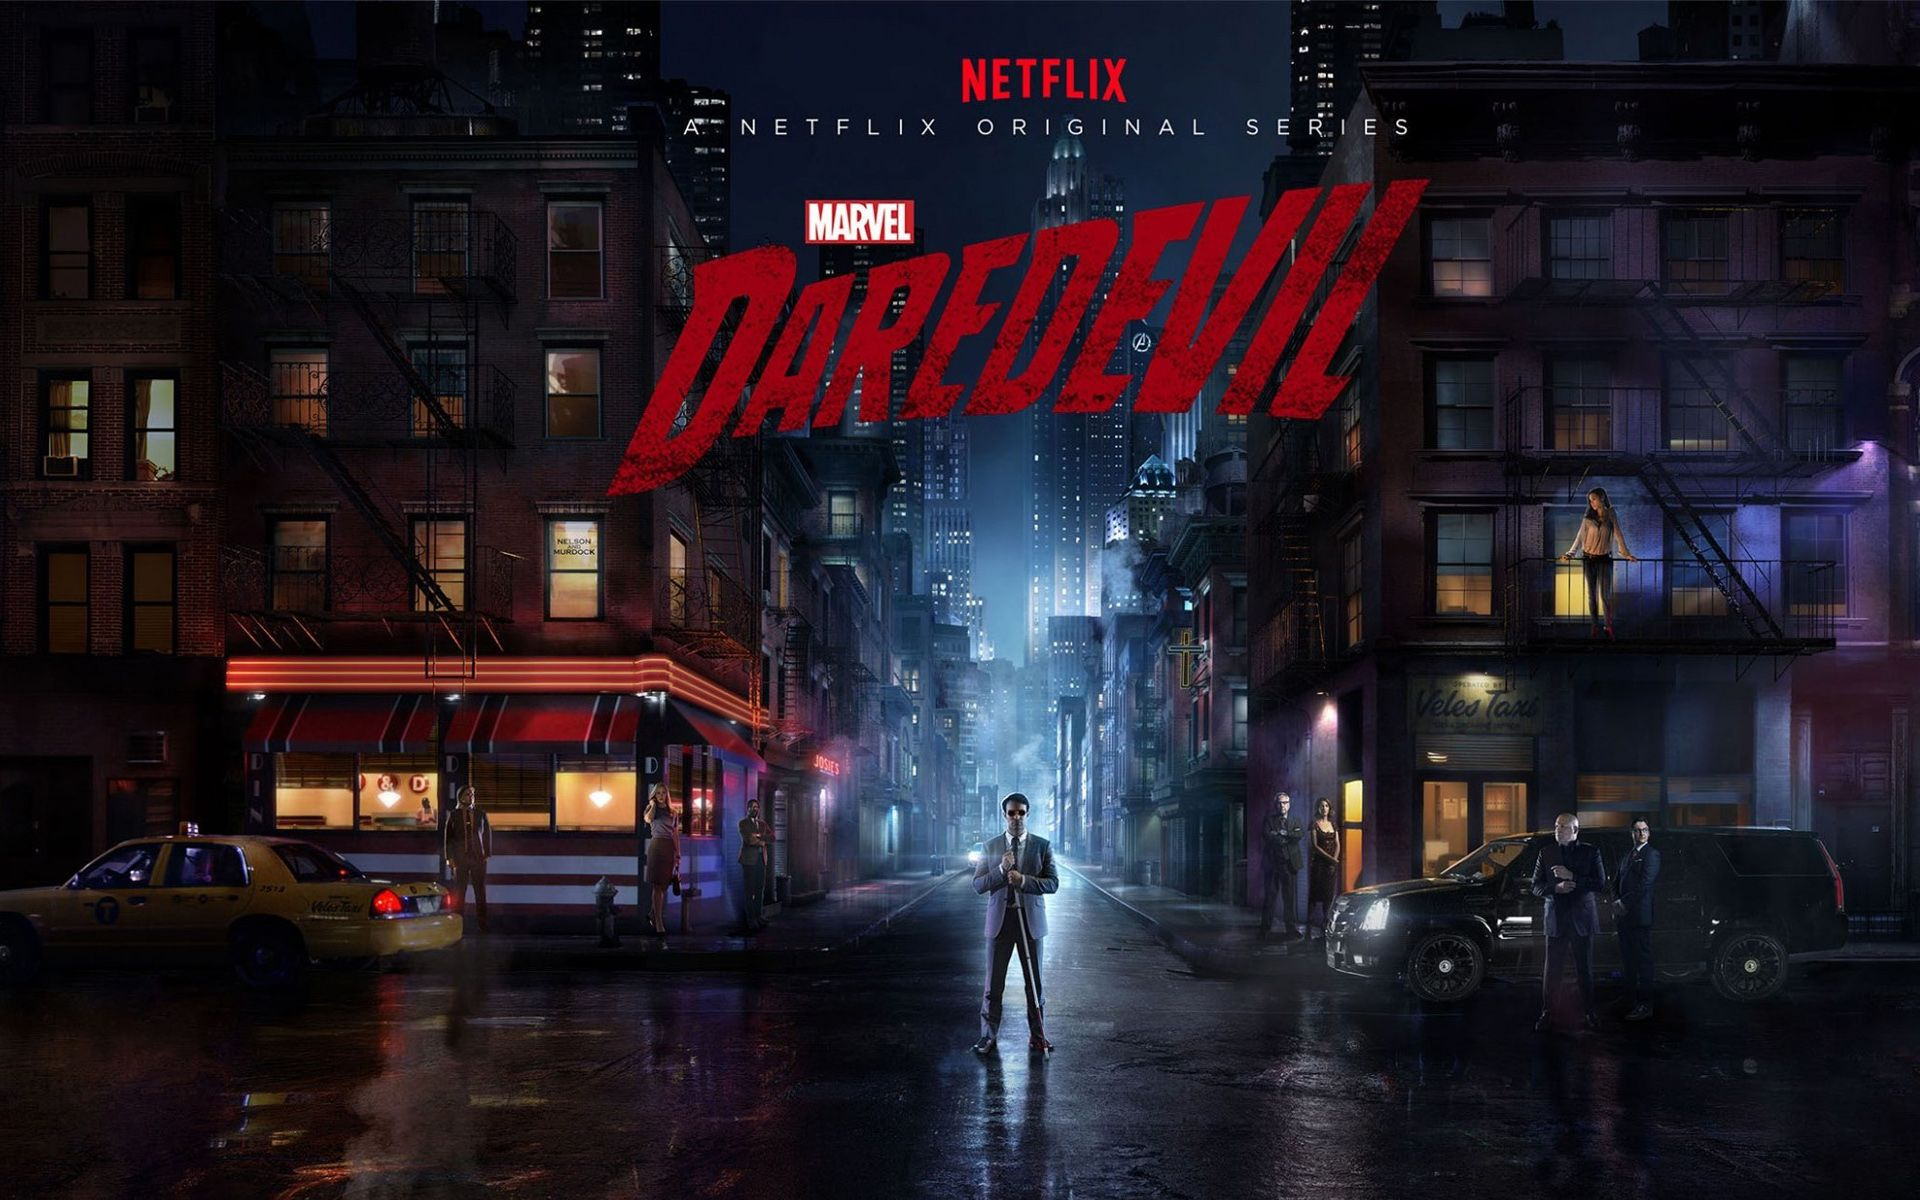 Daredevil 2015 Tv Series Wallpapers Hd Wallpapers